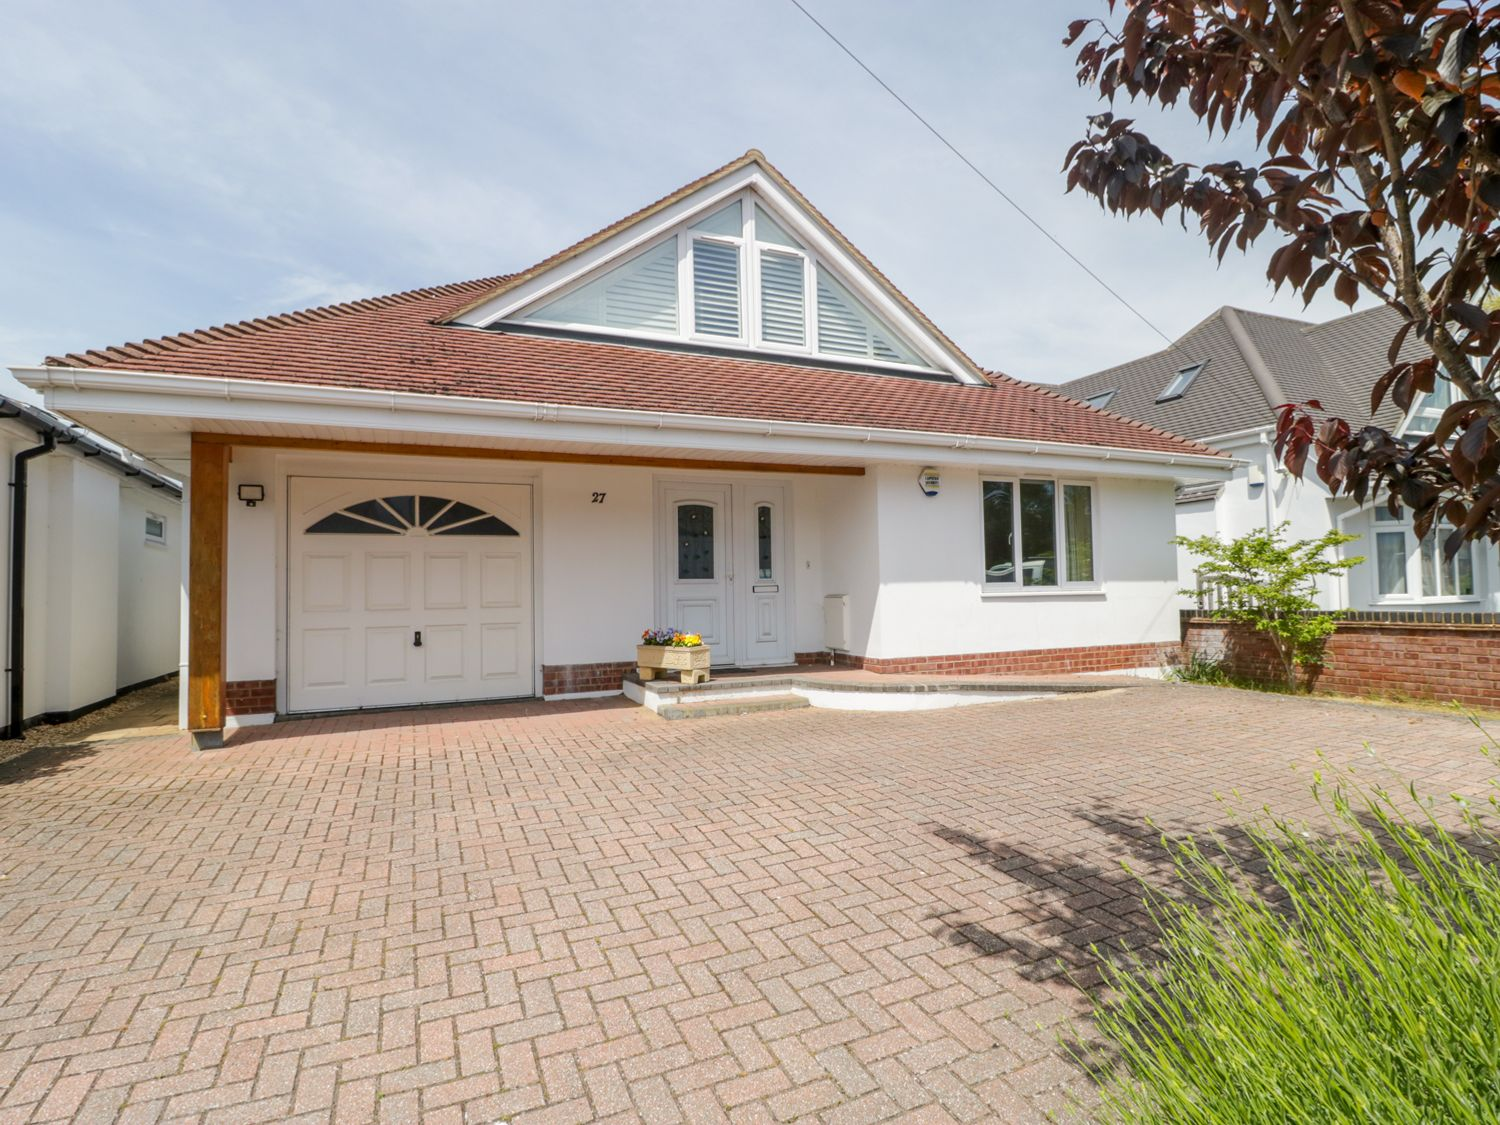 27 Wick Lane - Dorset - 1012793 - photo 1